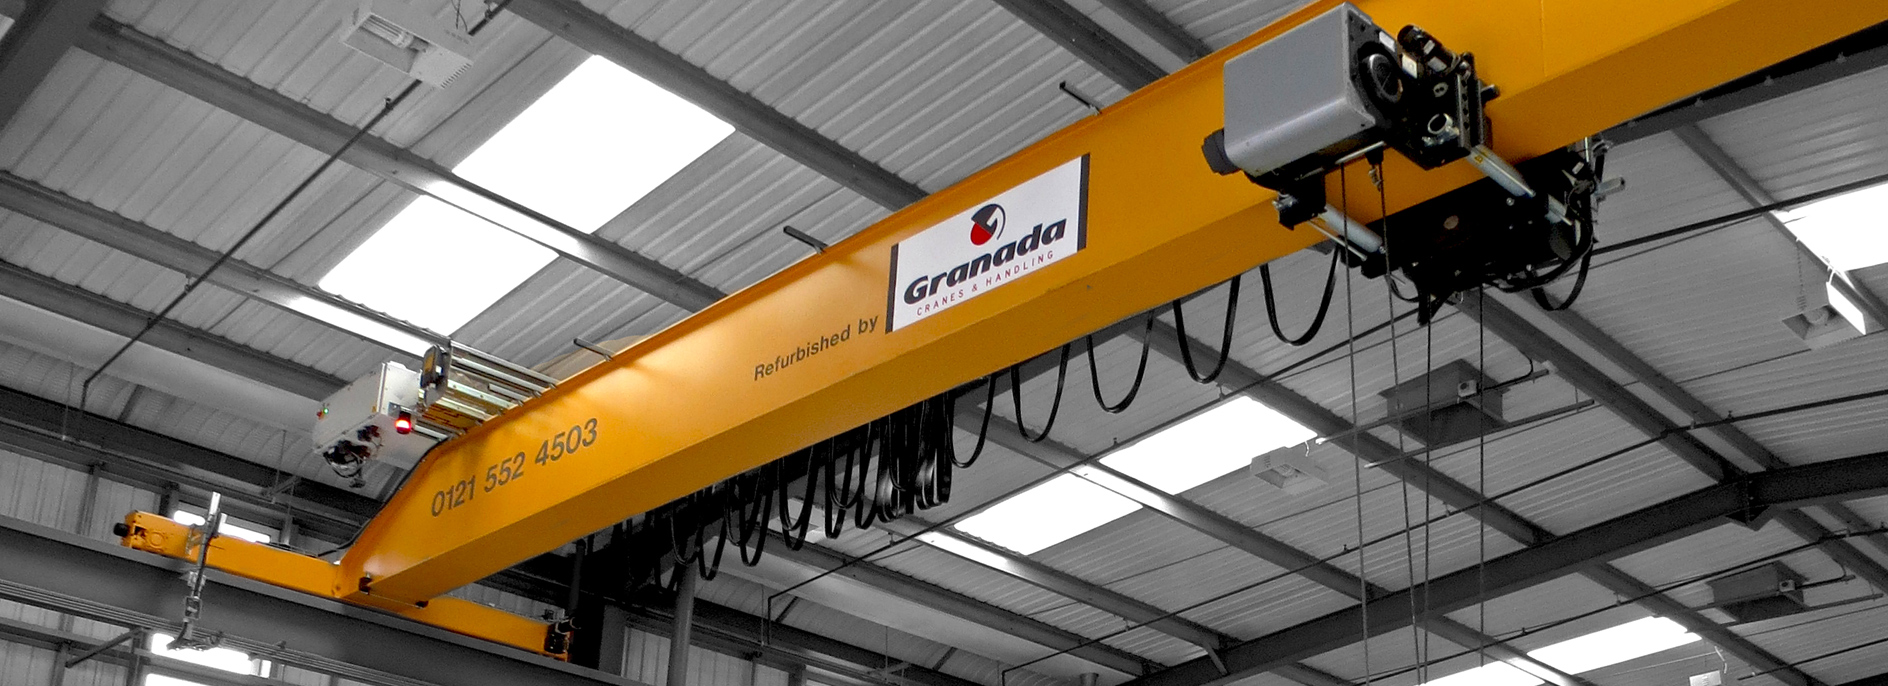 refurbished Kone Cranes overhead crane system modified by Granada Cranes and Handling